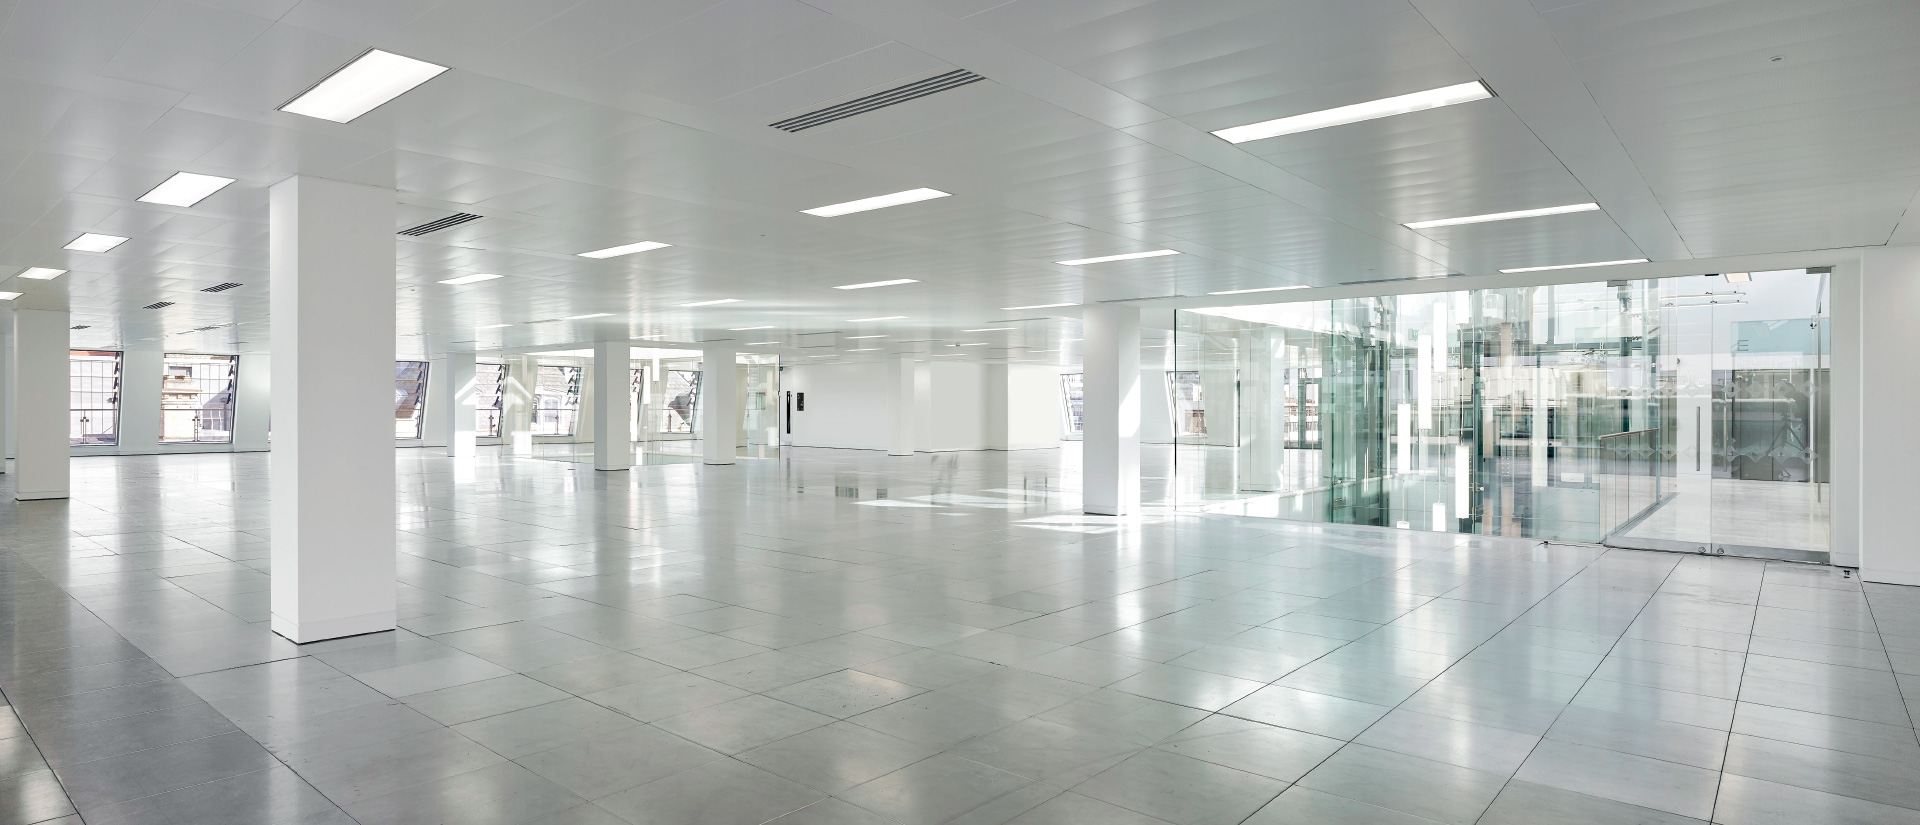 55 Colmore Row Floor Space